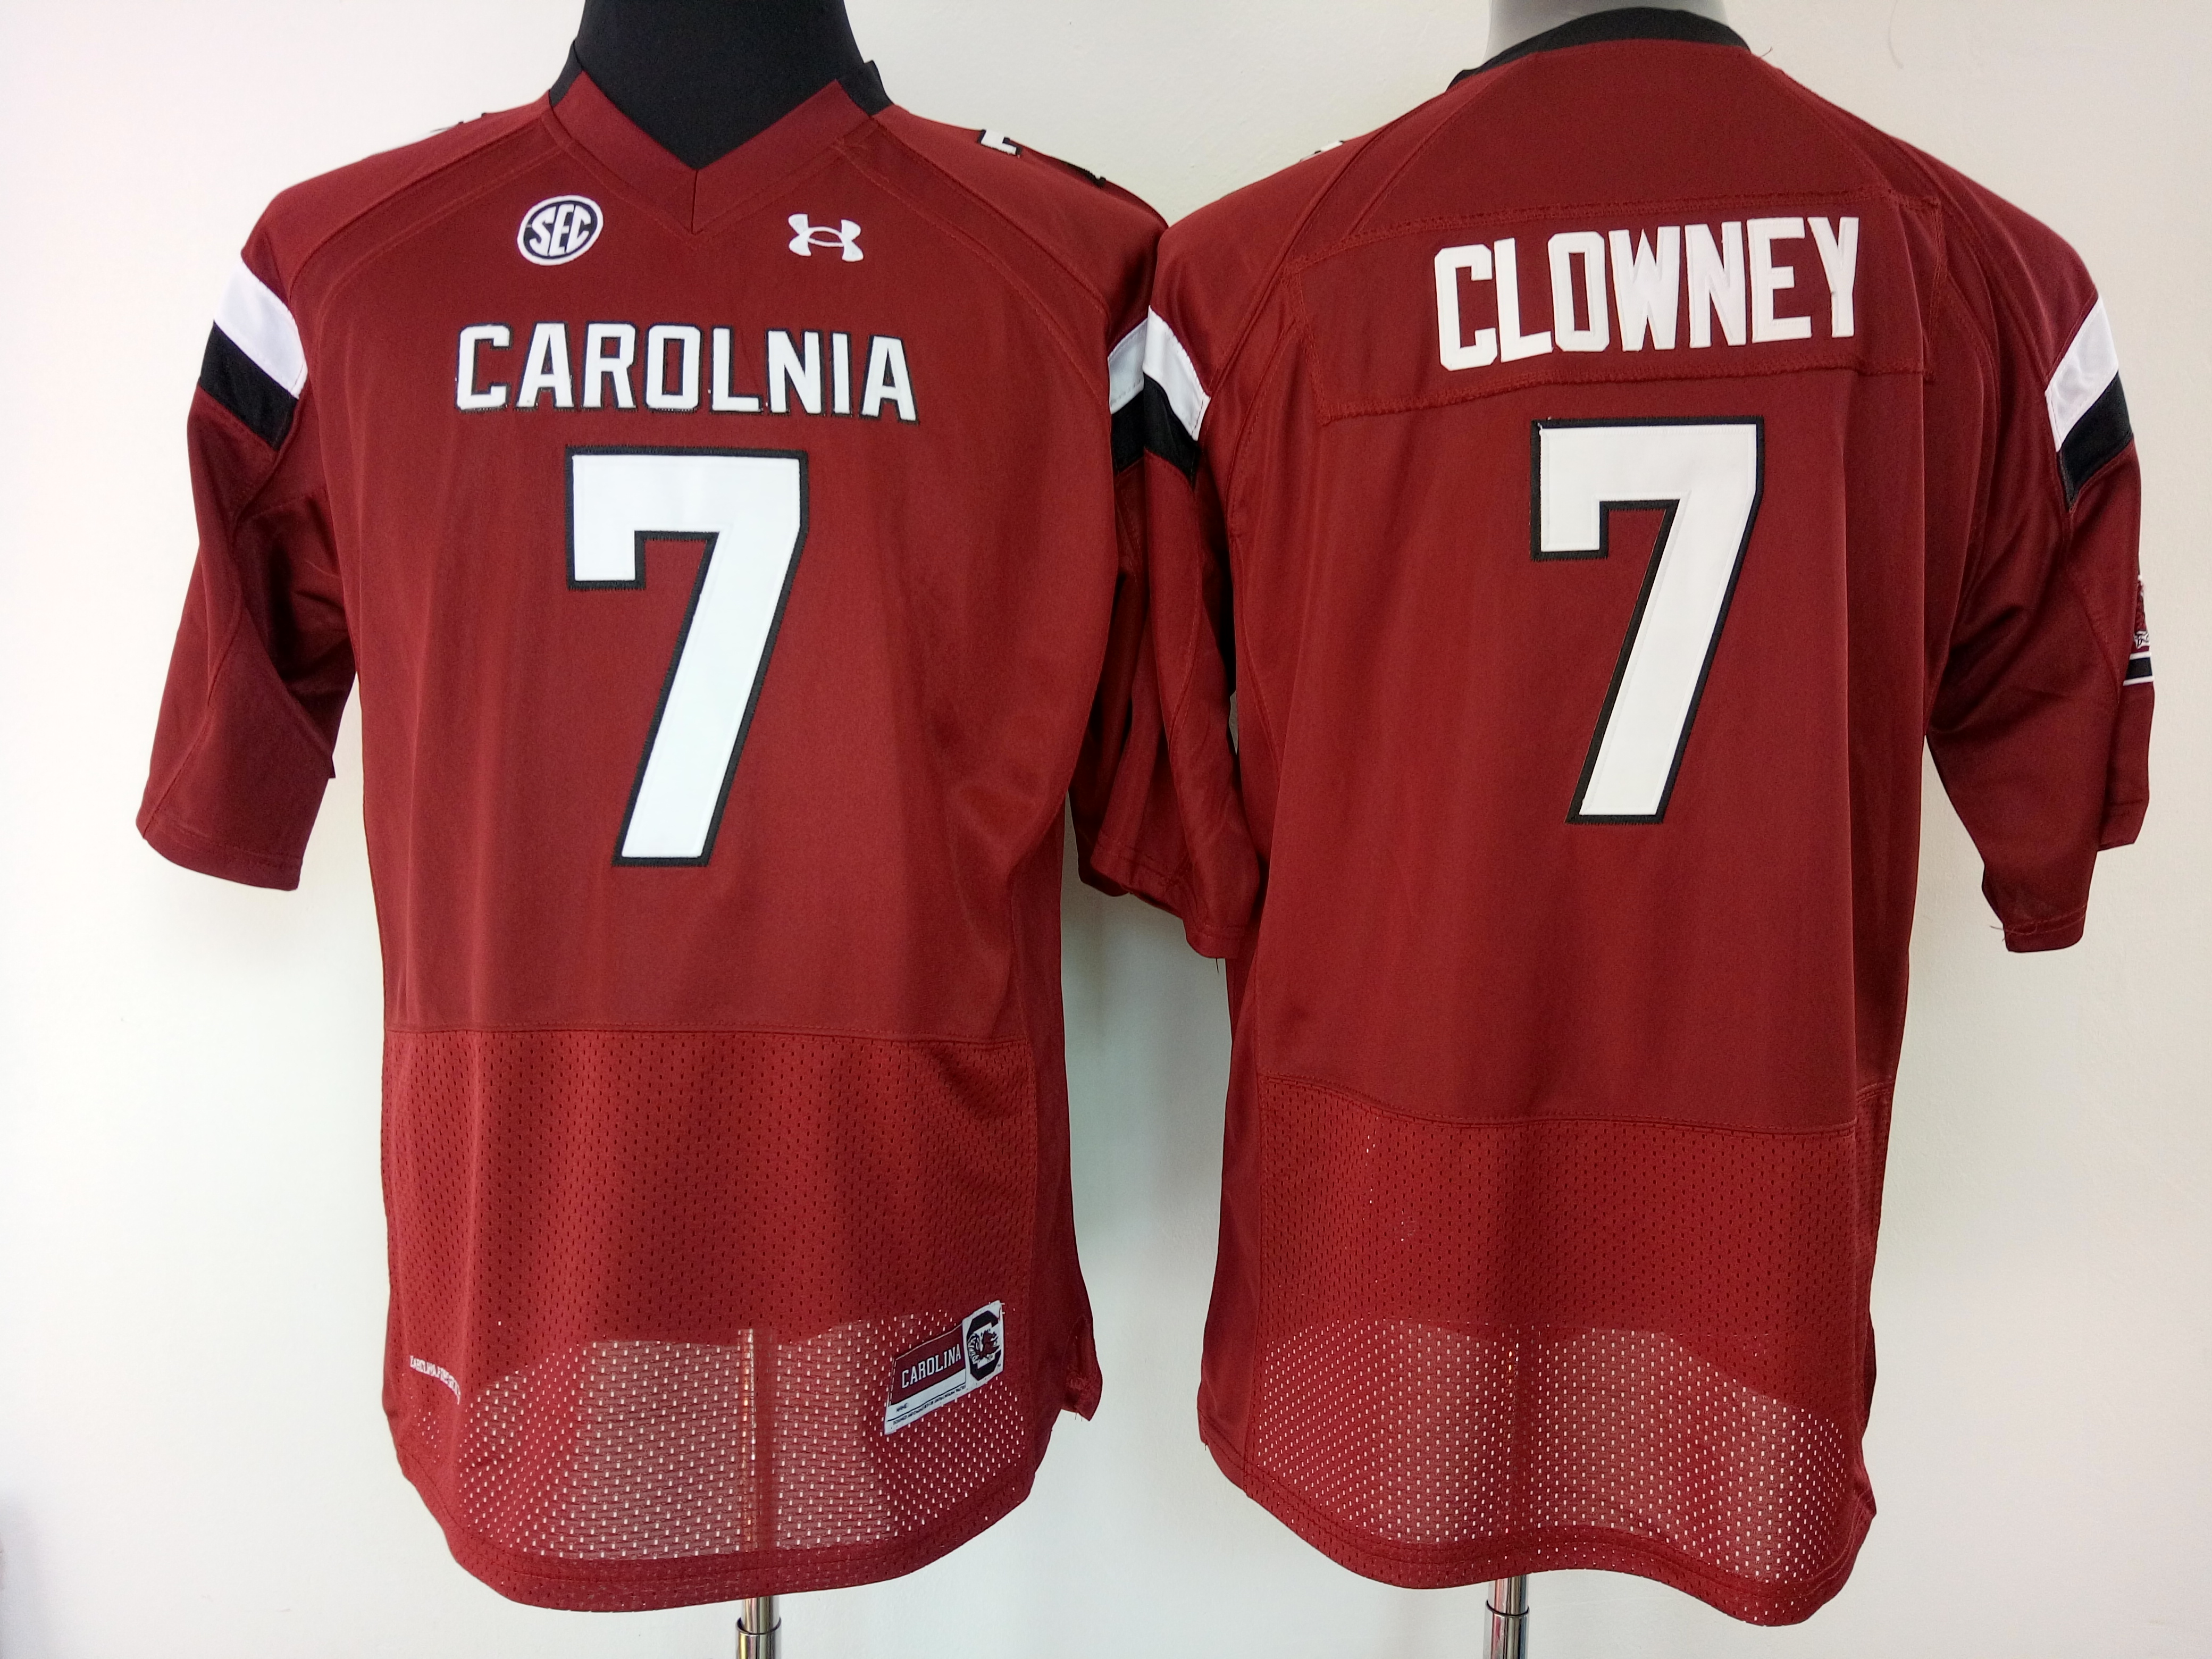 NCAA Womens South Carolina Gamecock Red 7 clowney jerseys